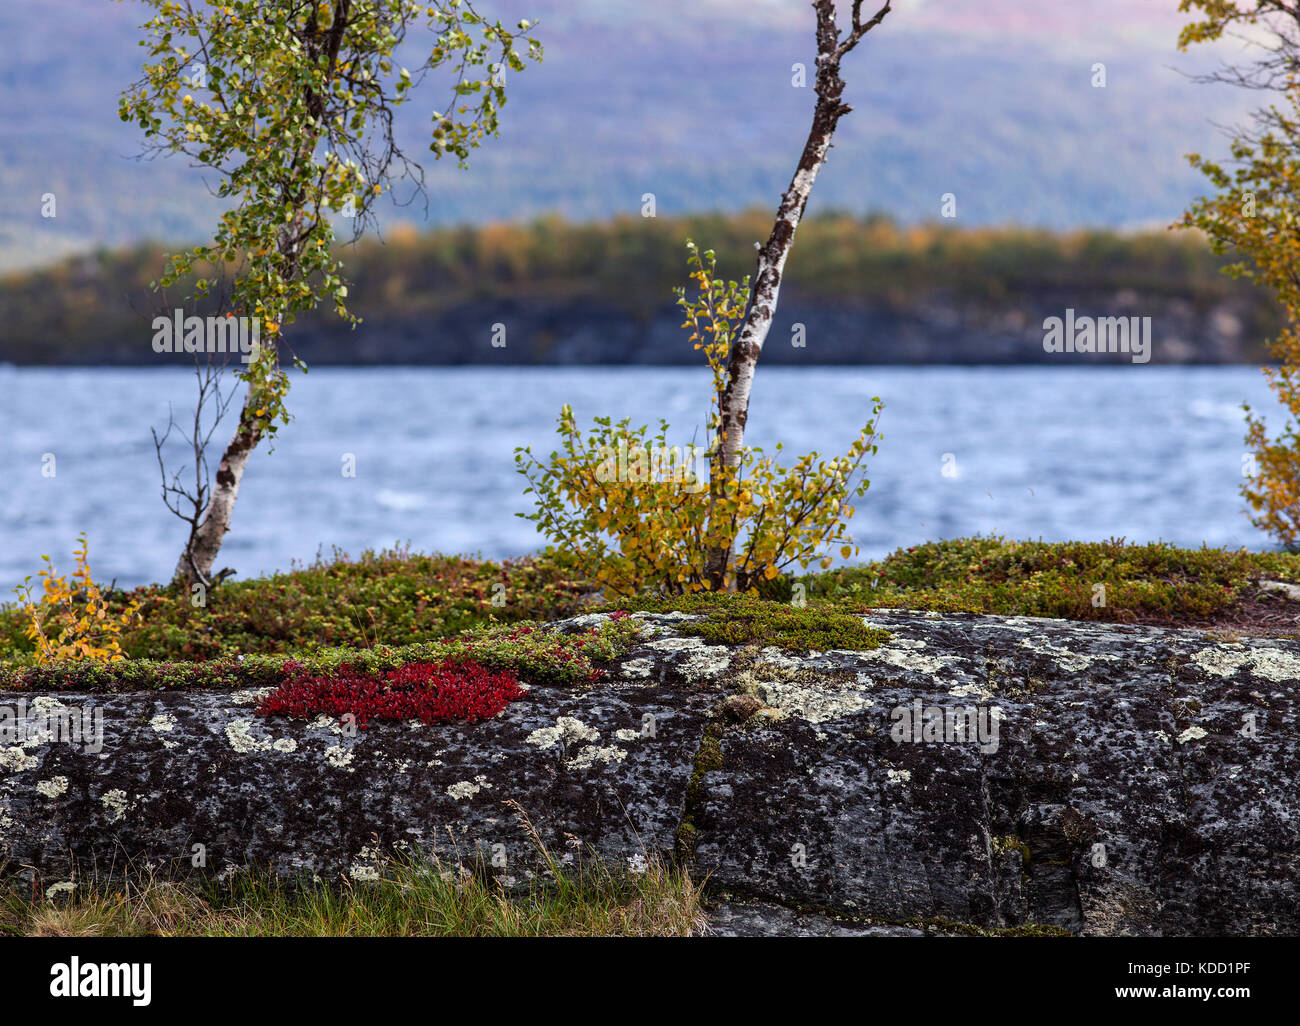 Alpine bearberry, mountain bearberry on a cliff this side a lake. Mountain in the background, autumn. Stock Photo